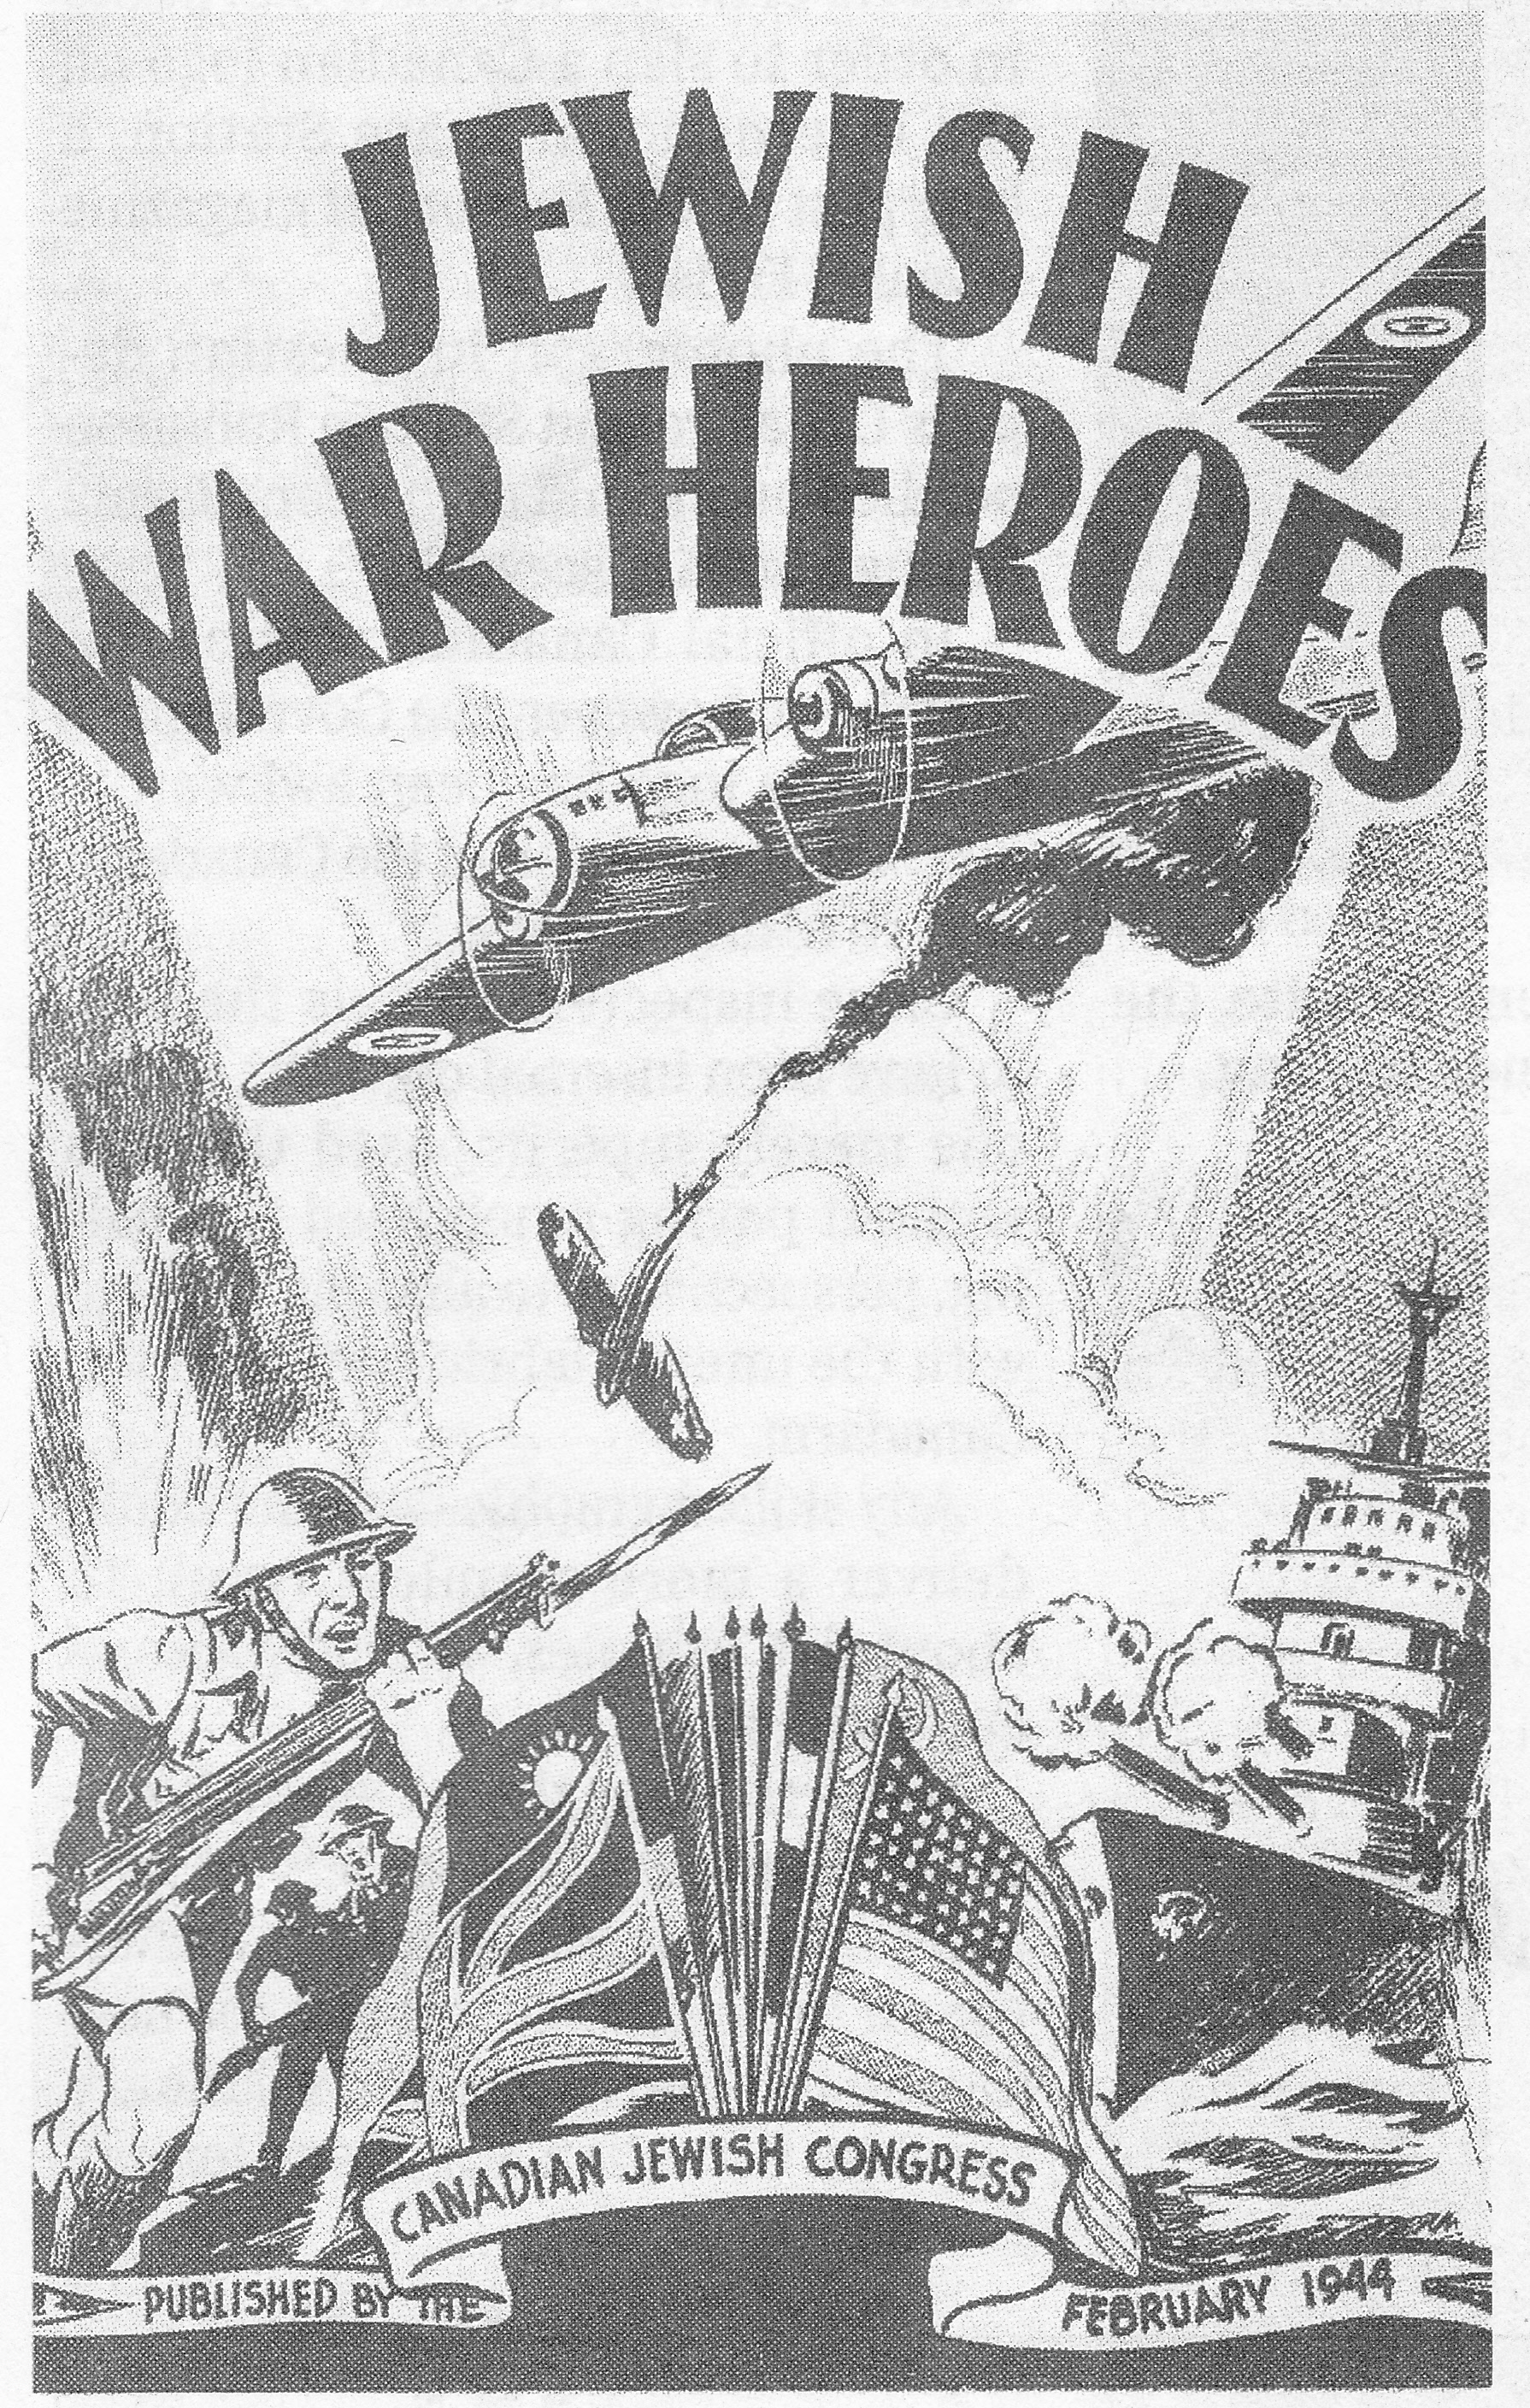 C:\Users\Robert\Documents\CANADIAN CARTOONING ILLUSTRATION and ANIMATION\IMAGE CARTOON J\JEWISH WAR HEROES.jpg